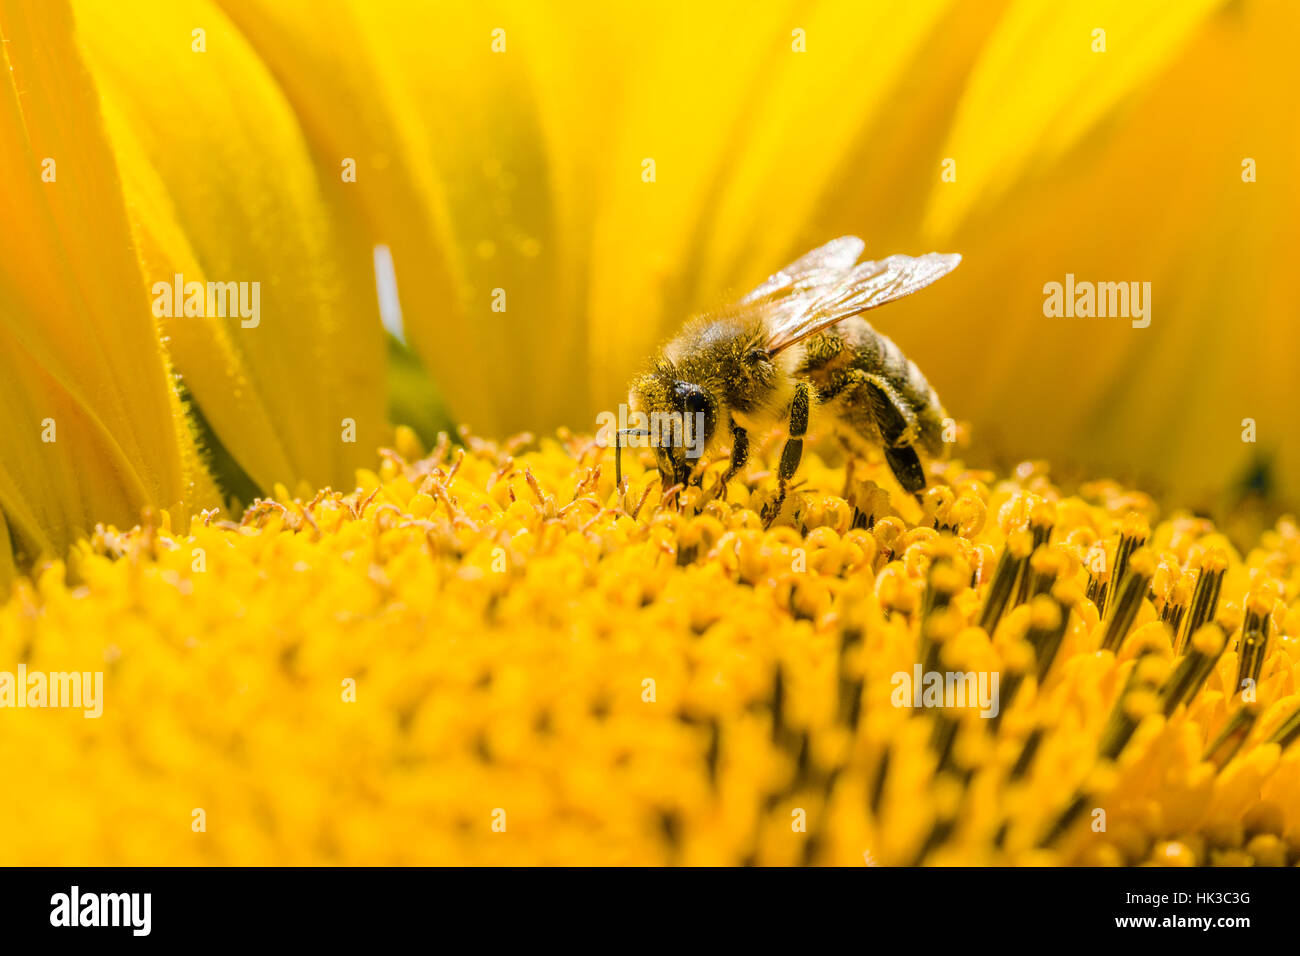 A Carniolan honey bee (Apis mellifera carnica) is collecting nectar at a common sunflower (Helianthus annuus) blossom Stock Photo